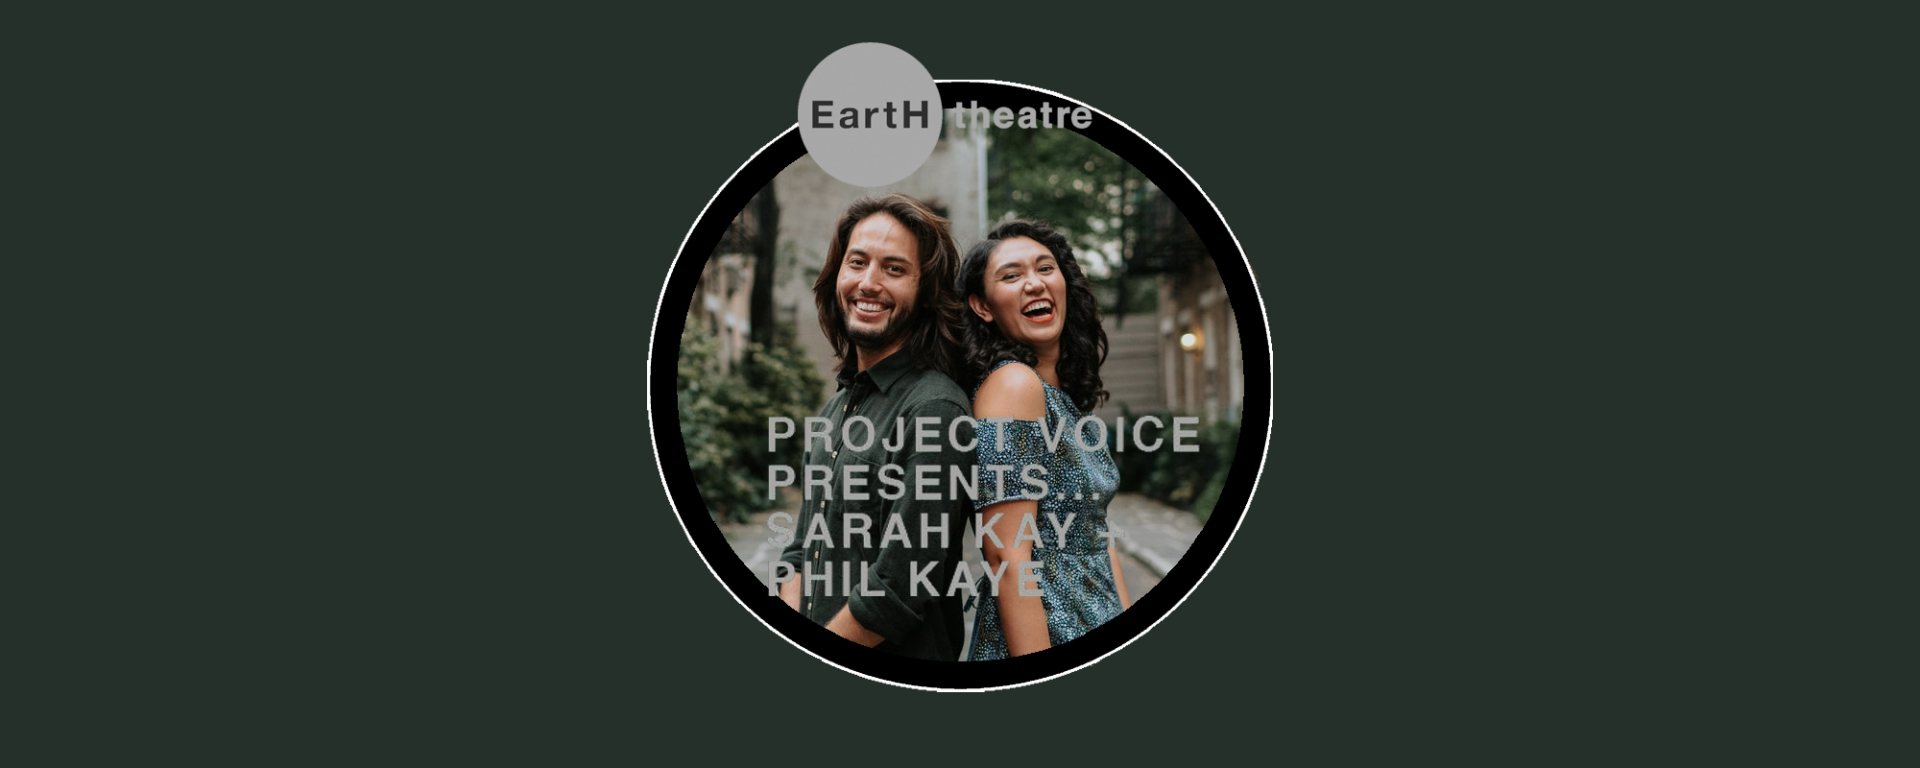 Phil Kaye and Sarah Kay at EartH theatre London 2019